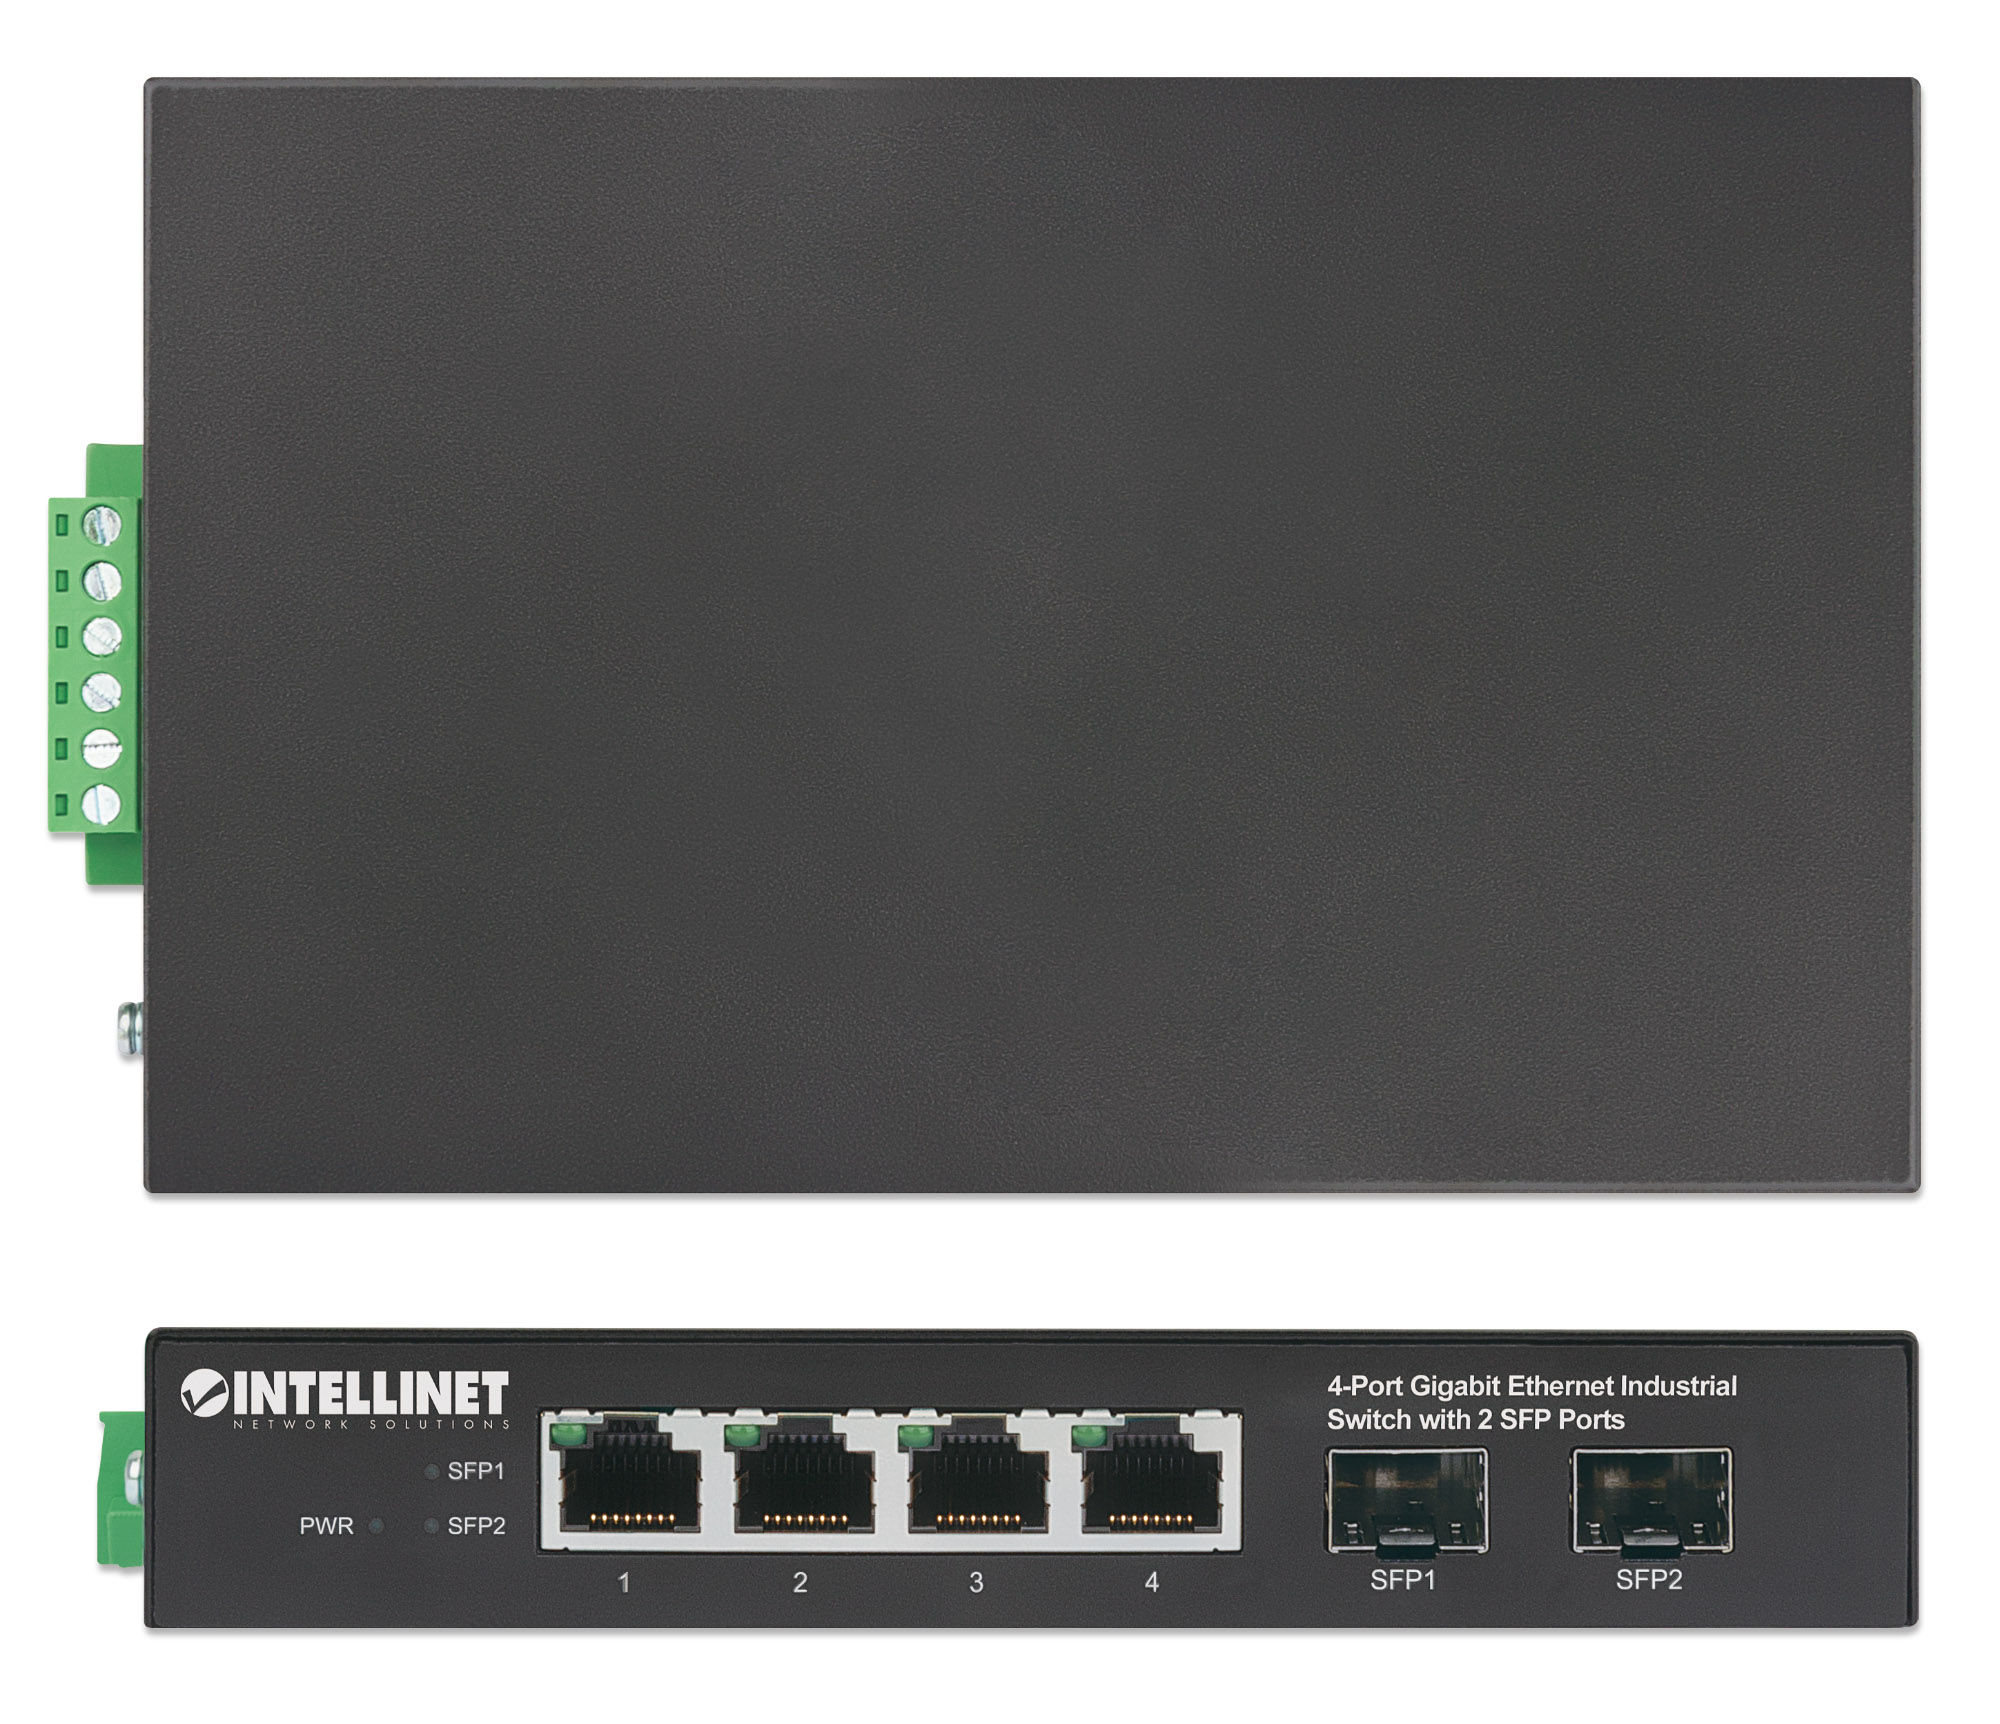 4-Port Gigabit Ethernet Industrial Switch with 2 SFP Ports